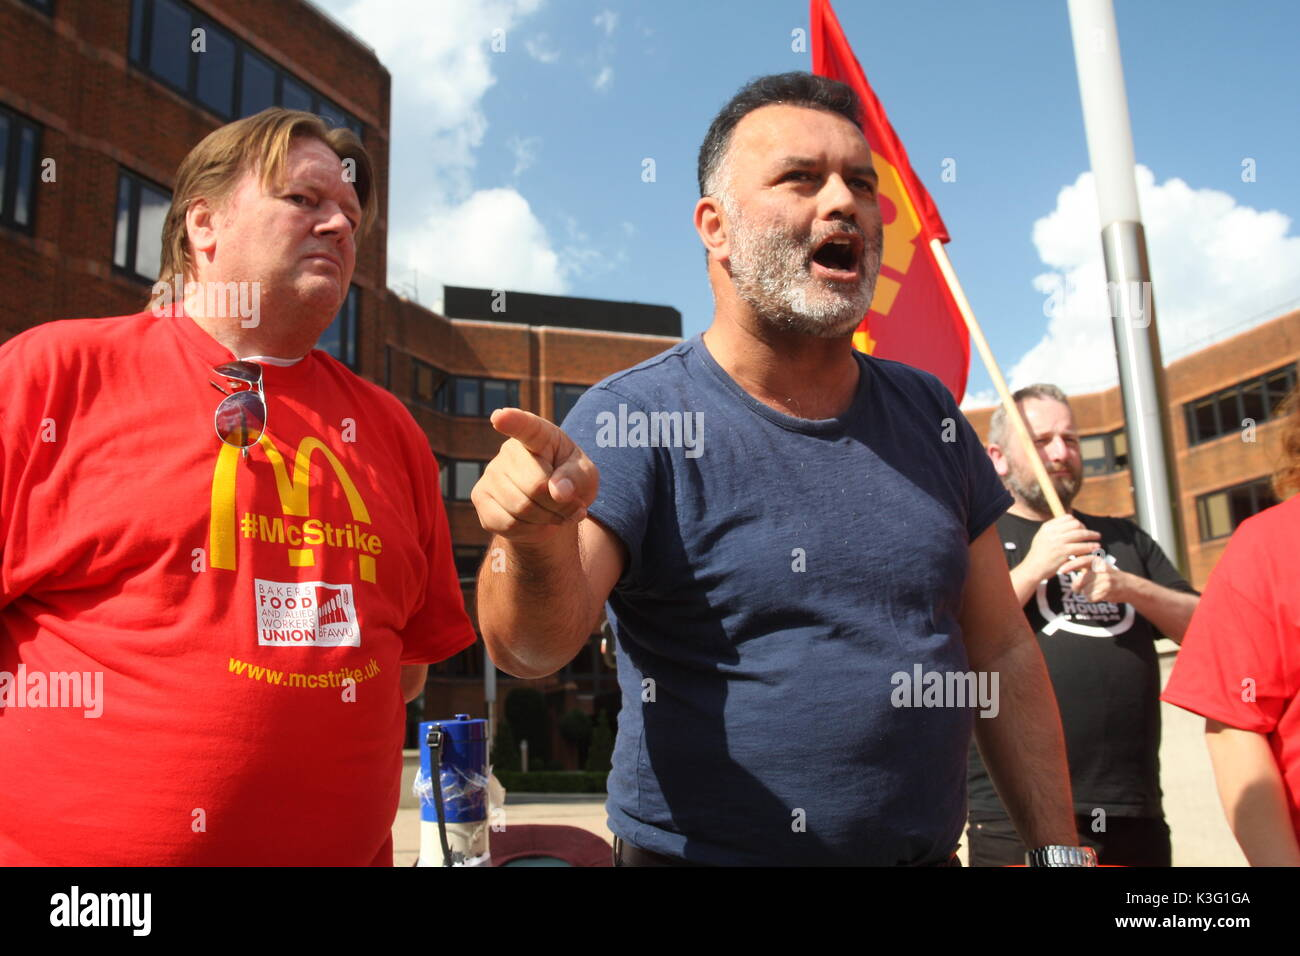 London, UK, 2nd September 2017.Mc Donalds workers and their supporters rally outside the company's HQ in East Finchley. The Bakers Food and Allied Workers Union (BFAWU) organised the rally which precedes a strike at two McDonalds branches on Monday. Pictured; Matt McCarten , a speaker from the New Zealand union Unite which has campaigned against McDonalds with Ian Hodson, national president BFAWU. Roland Ravenhill/Alamy Live News - Stock Image